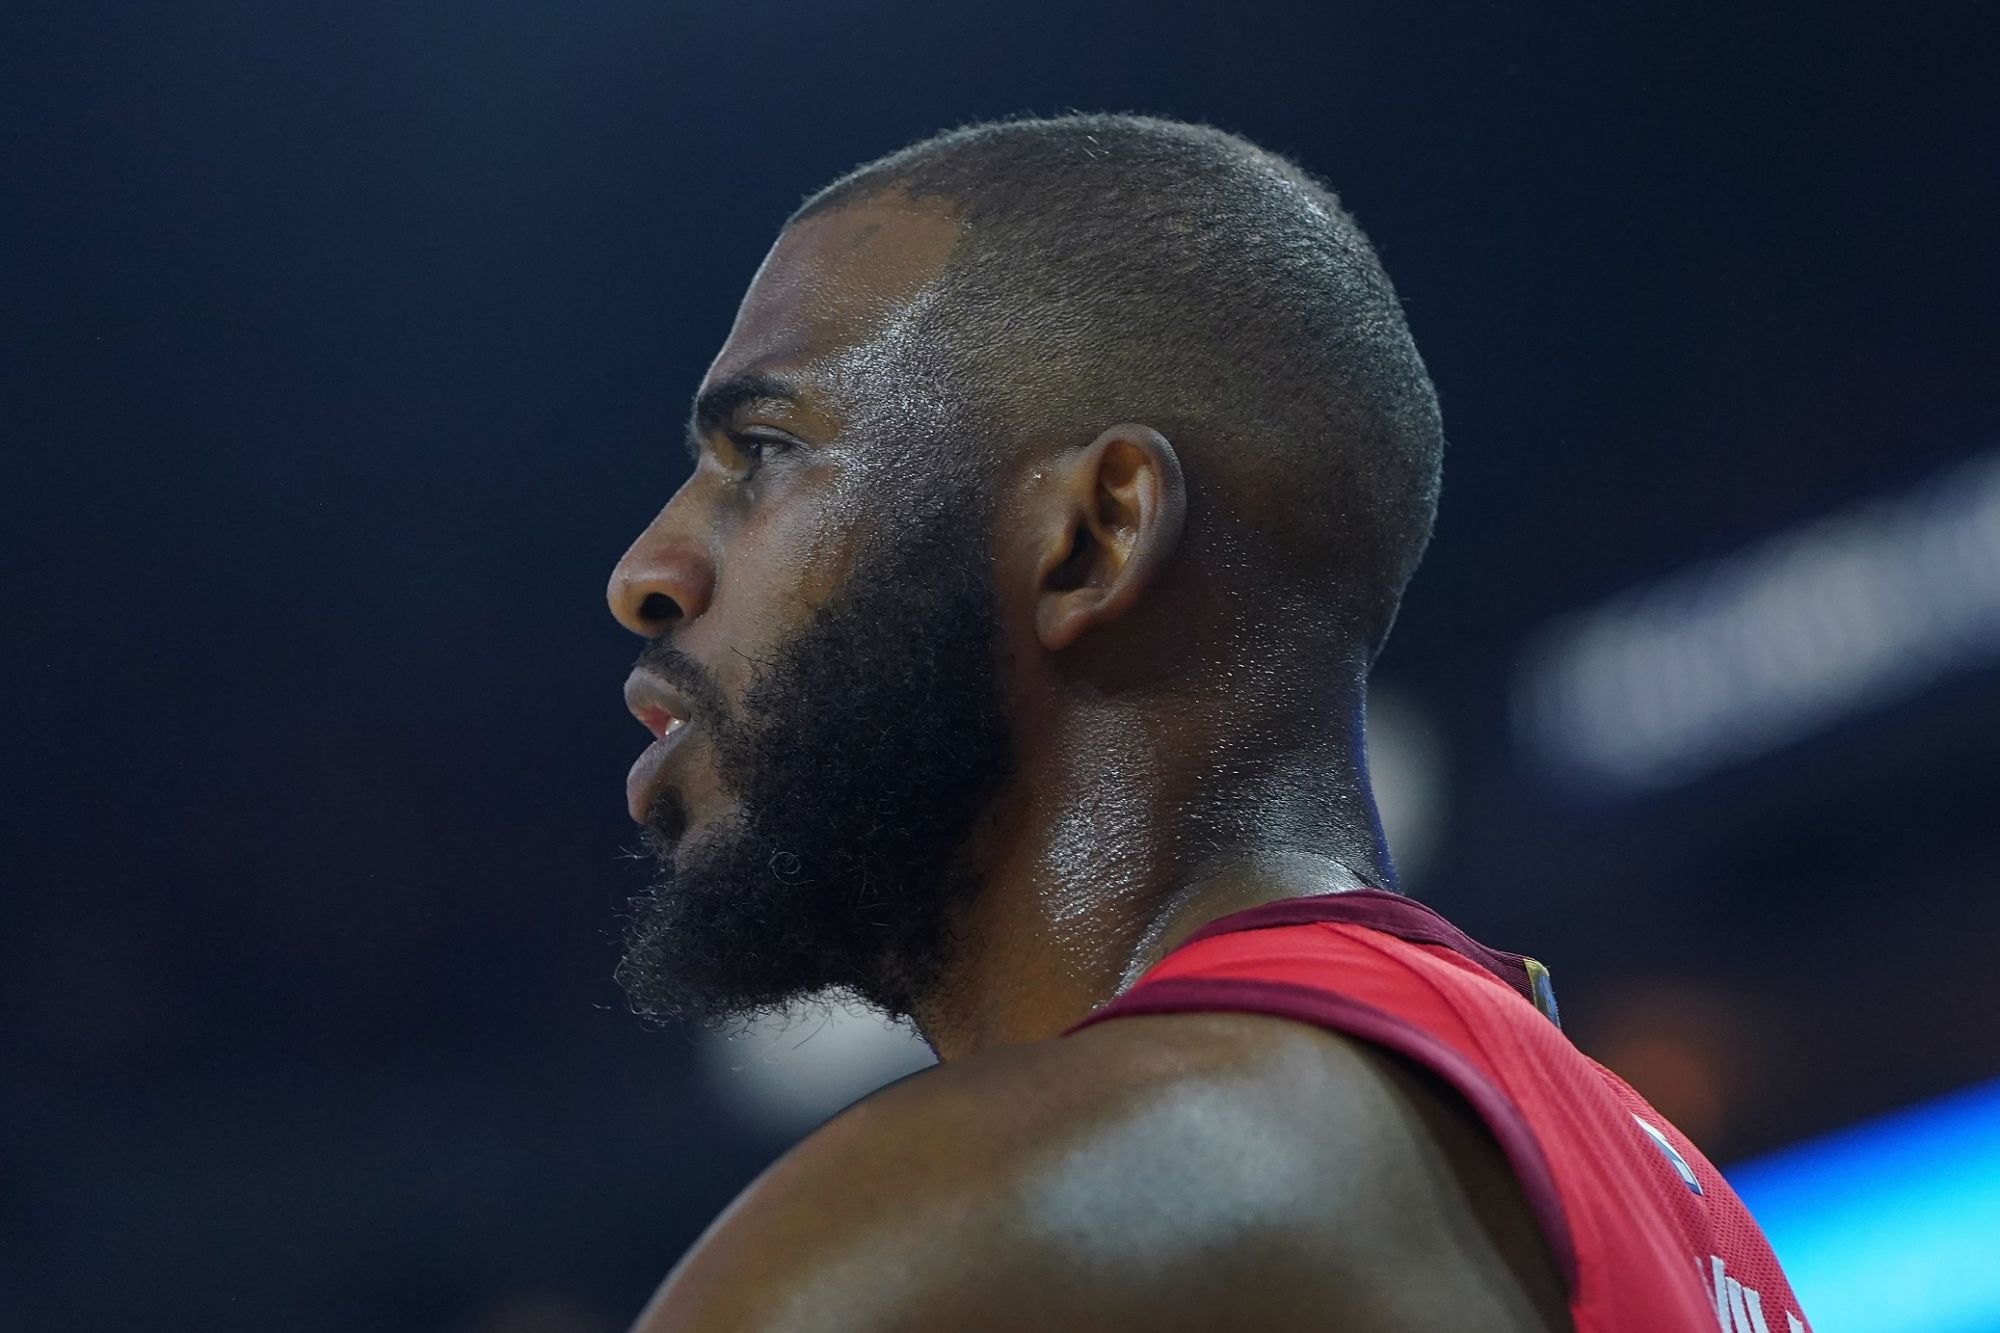 ba790c4042d Chris Paul: 'I Had $151 in My Bank Account When I Declared for the NBA' –  Technology Breaking News